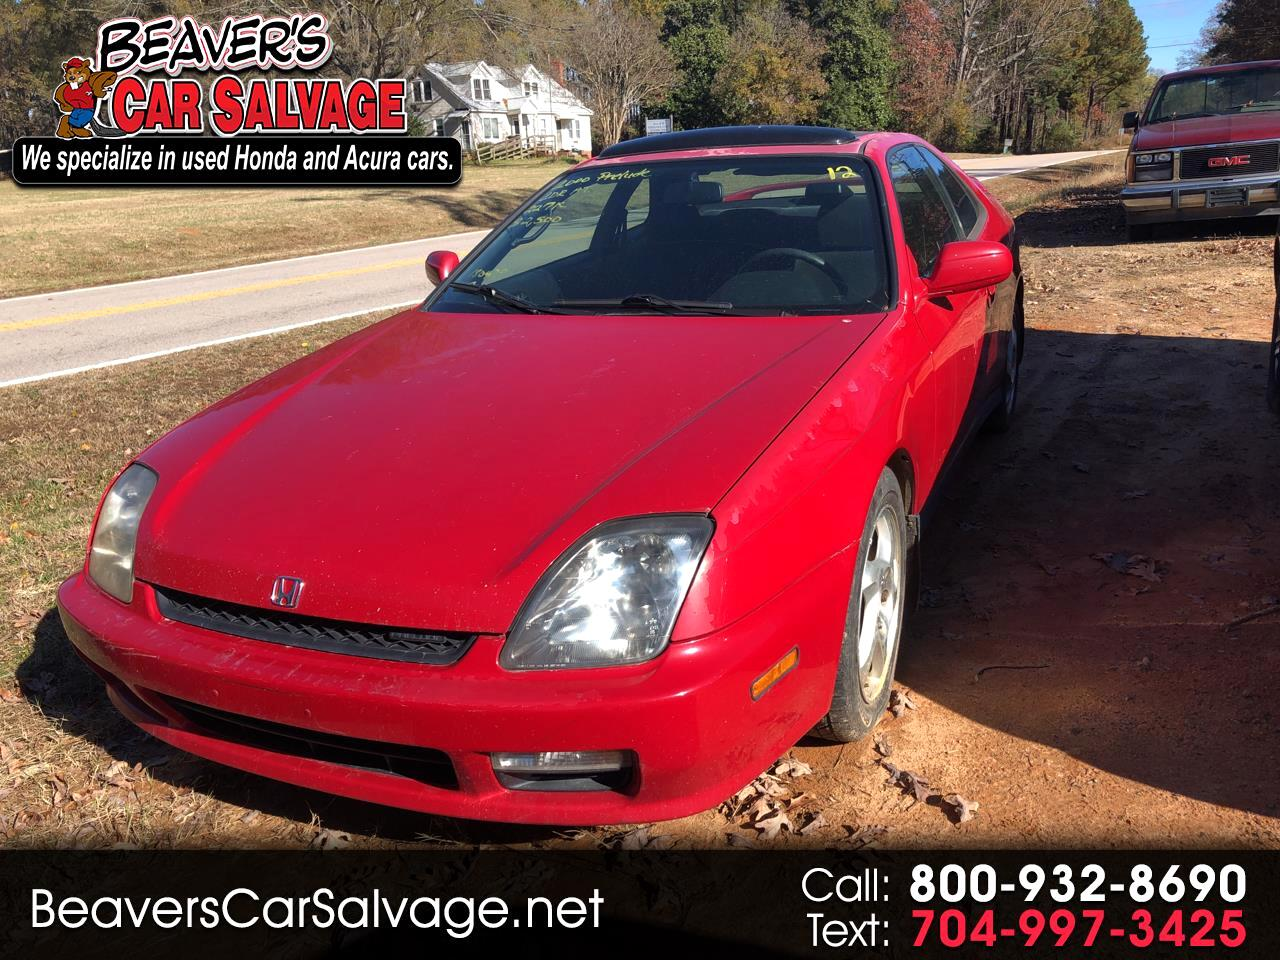 2000 Honda Prelude 2dr Cpe Manual